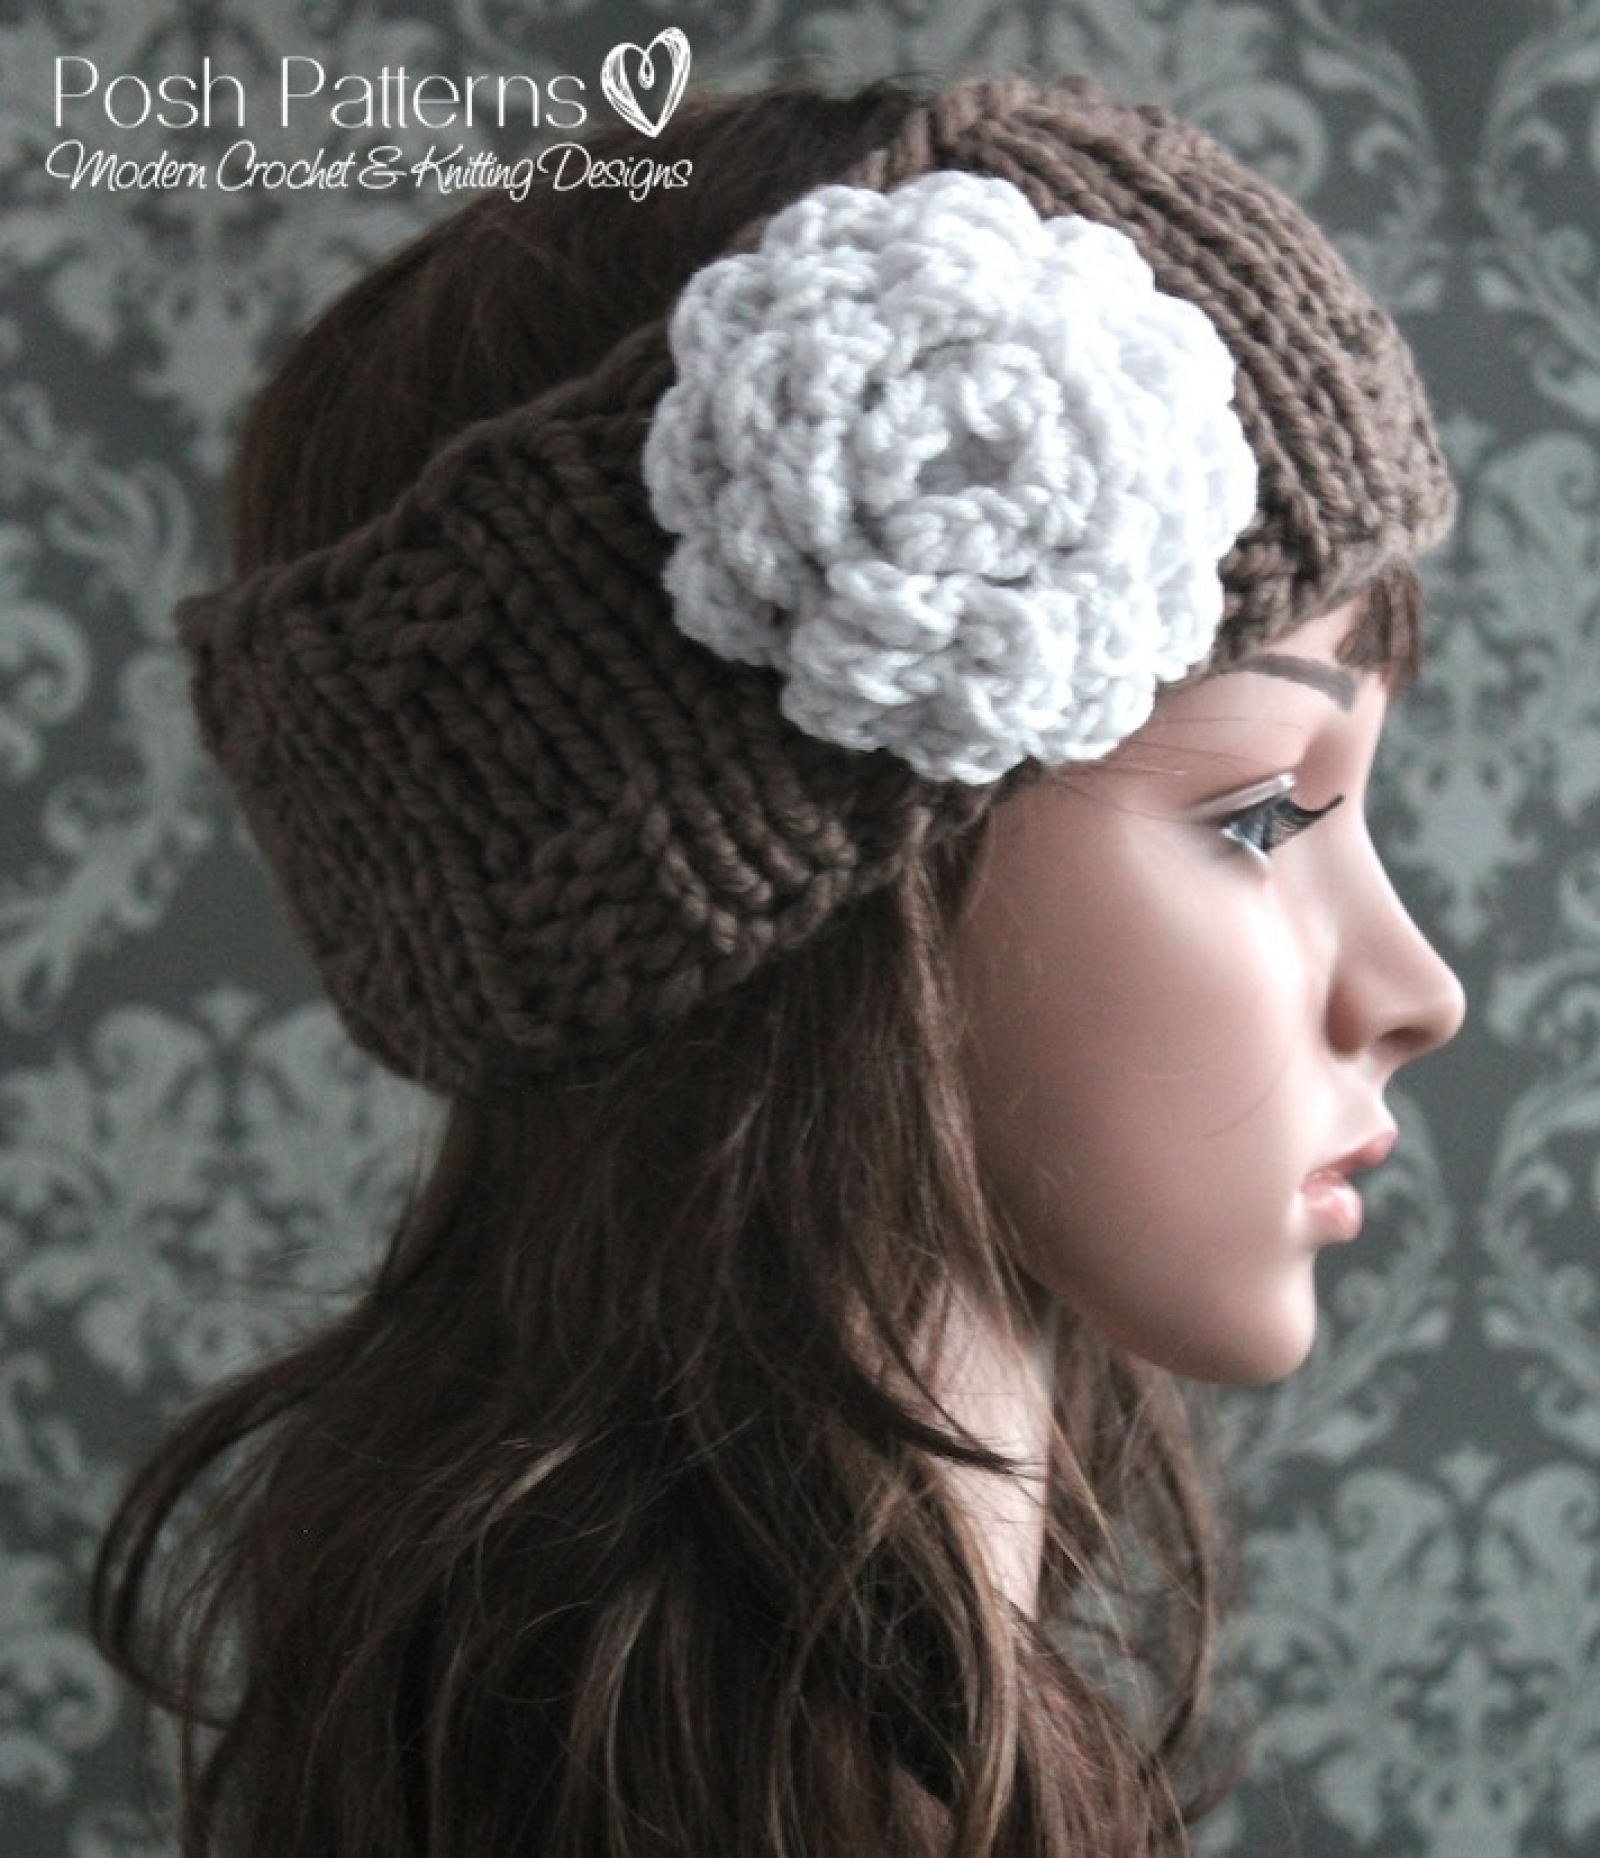 Knitted Ear Warmer Pattern : Headband Knitting Pattern - Knit Ear Warmer Pattern